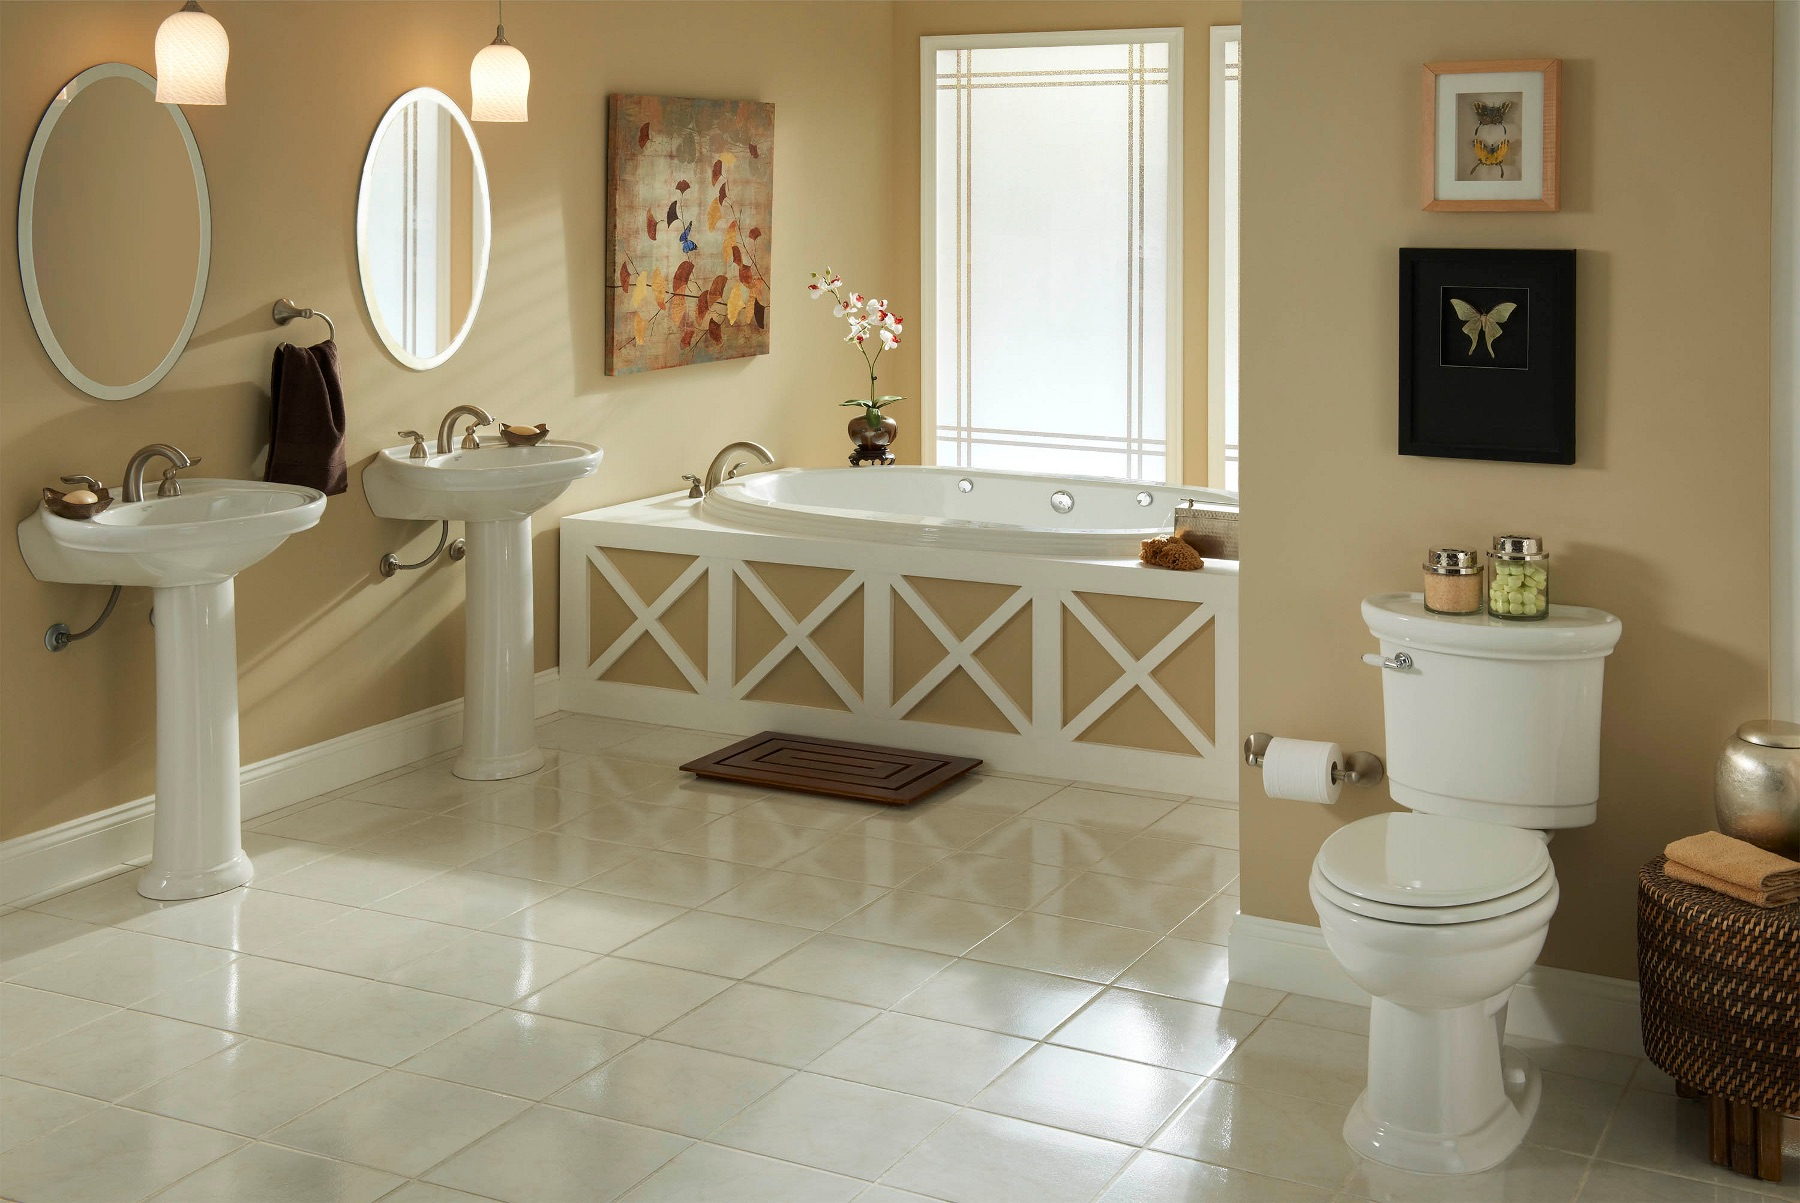 Ideas products for a primpperfect bathroom  Fifty Plus Life